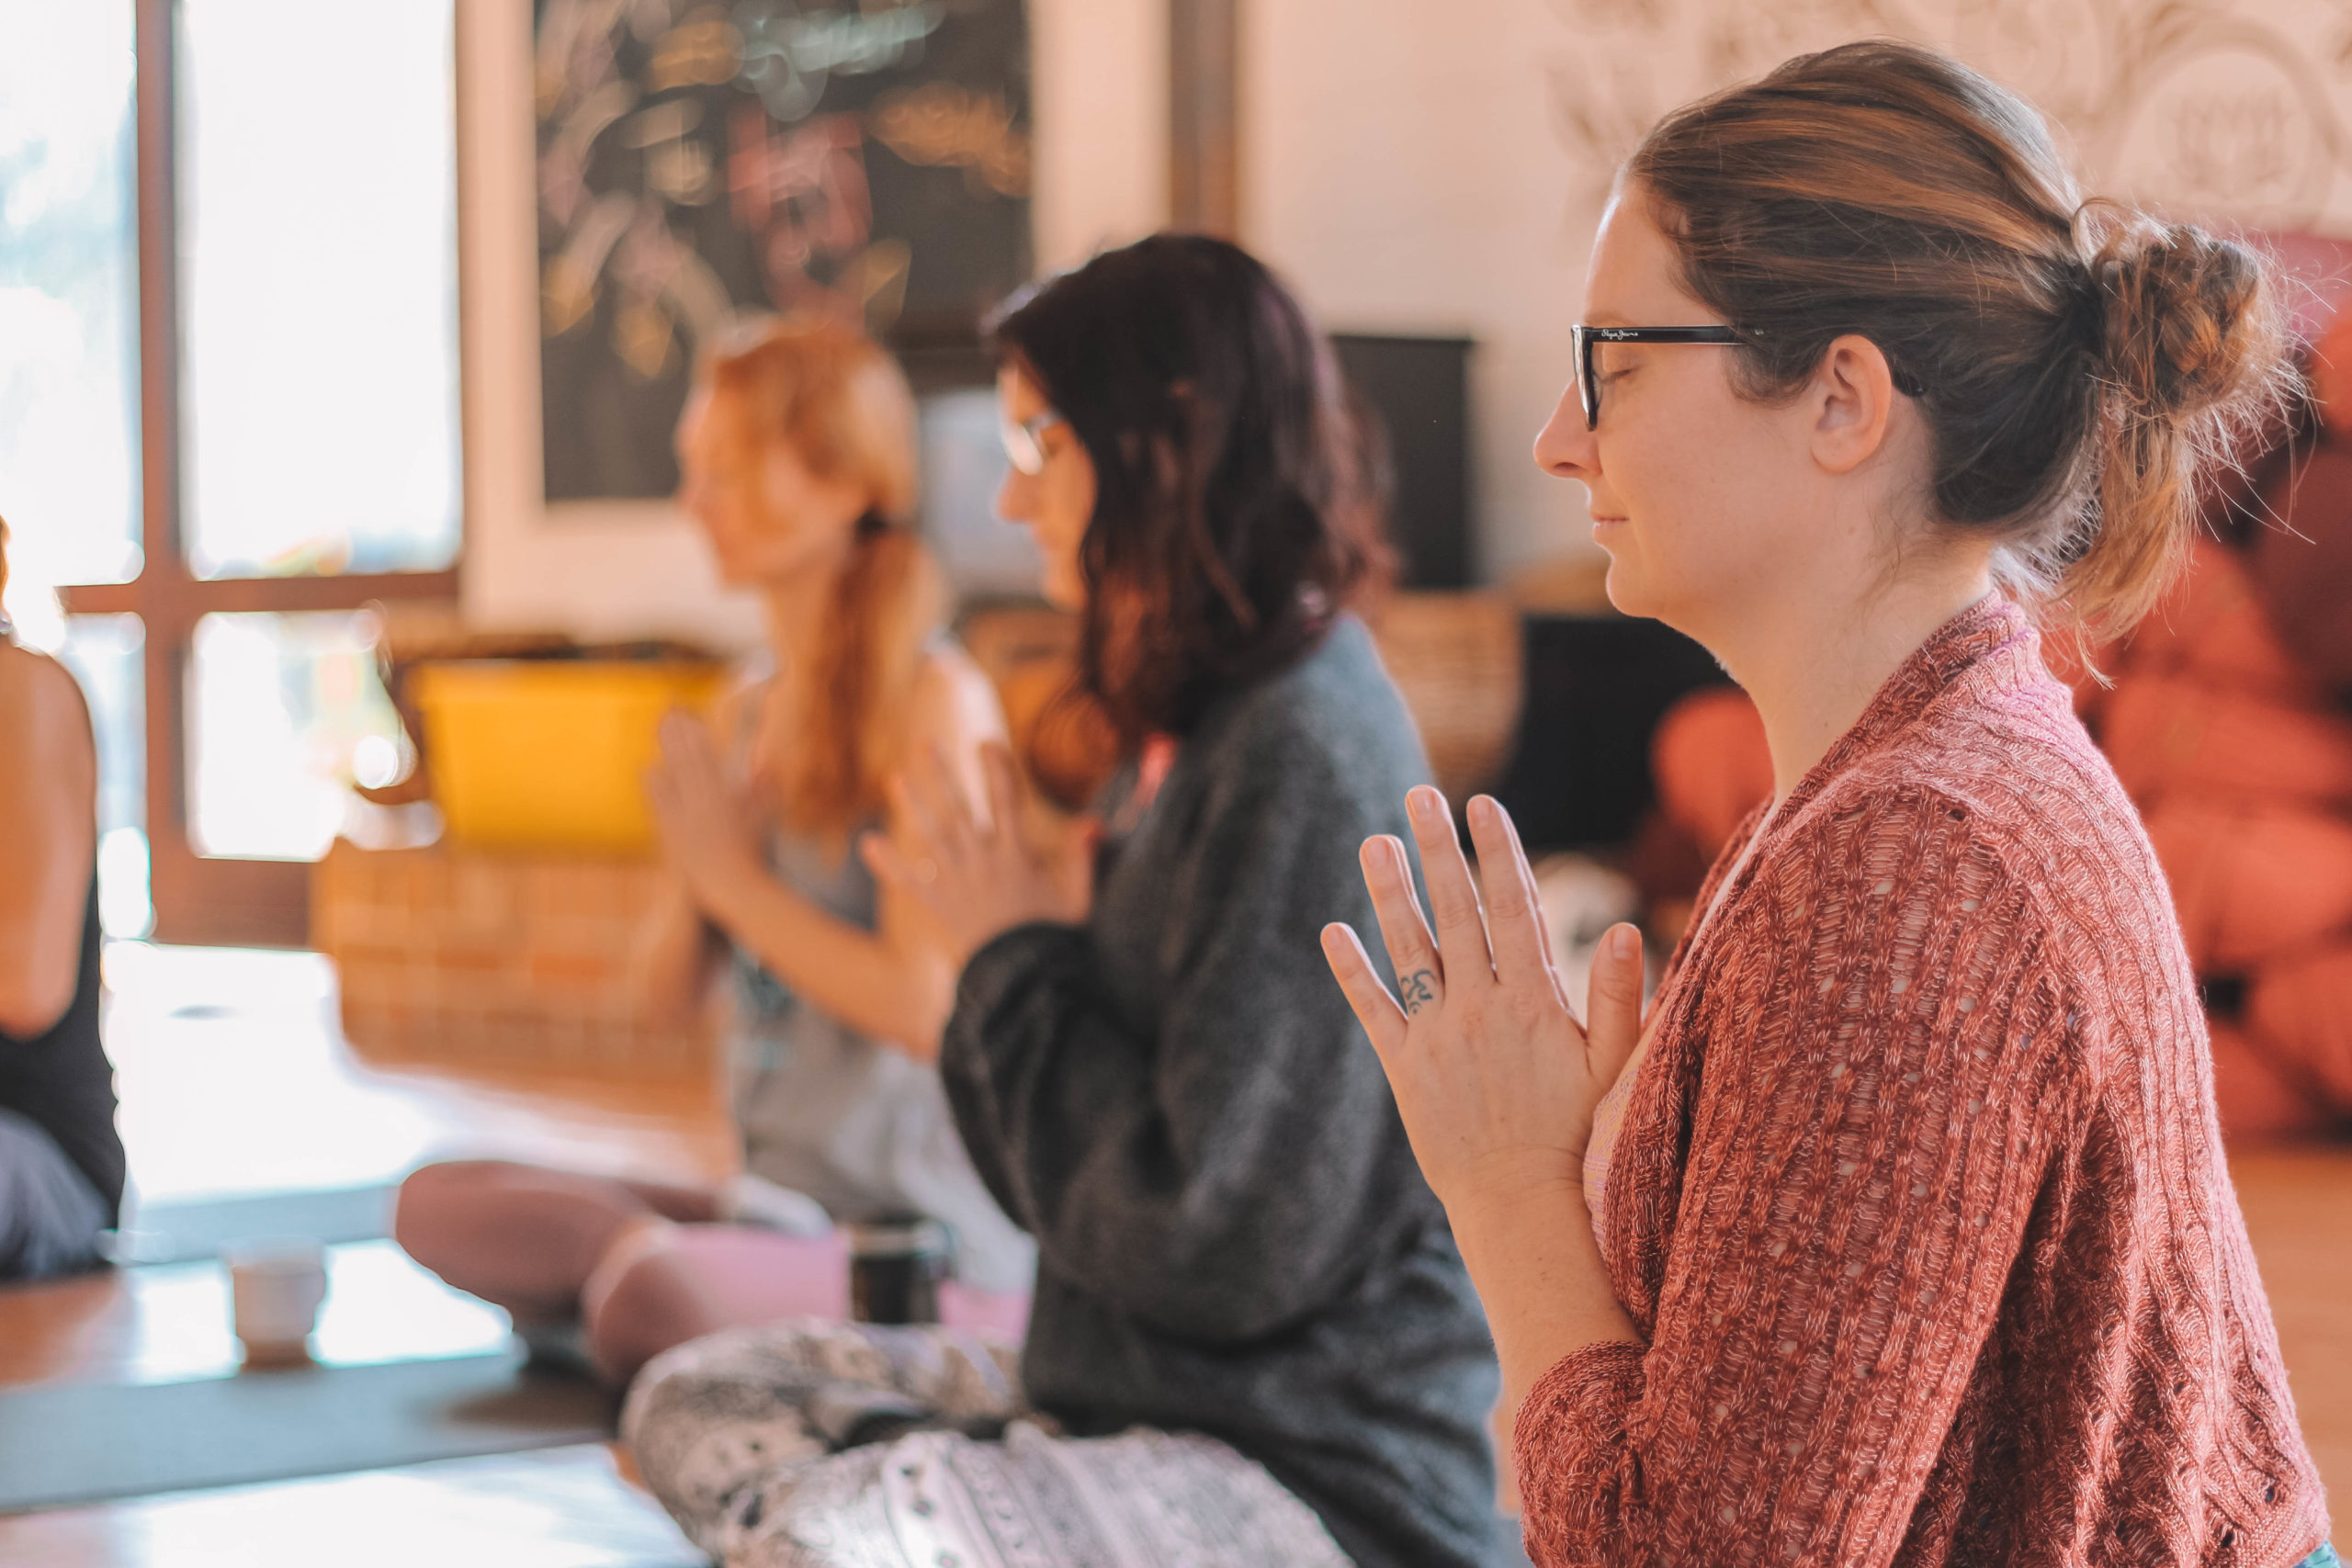 Showing meditating people immersed in yoga